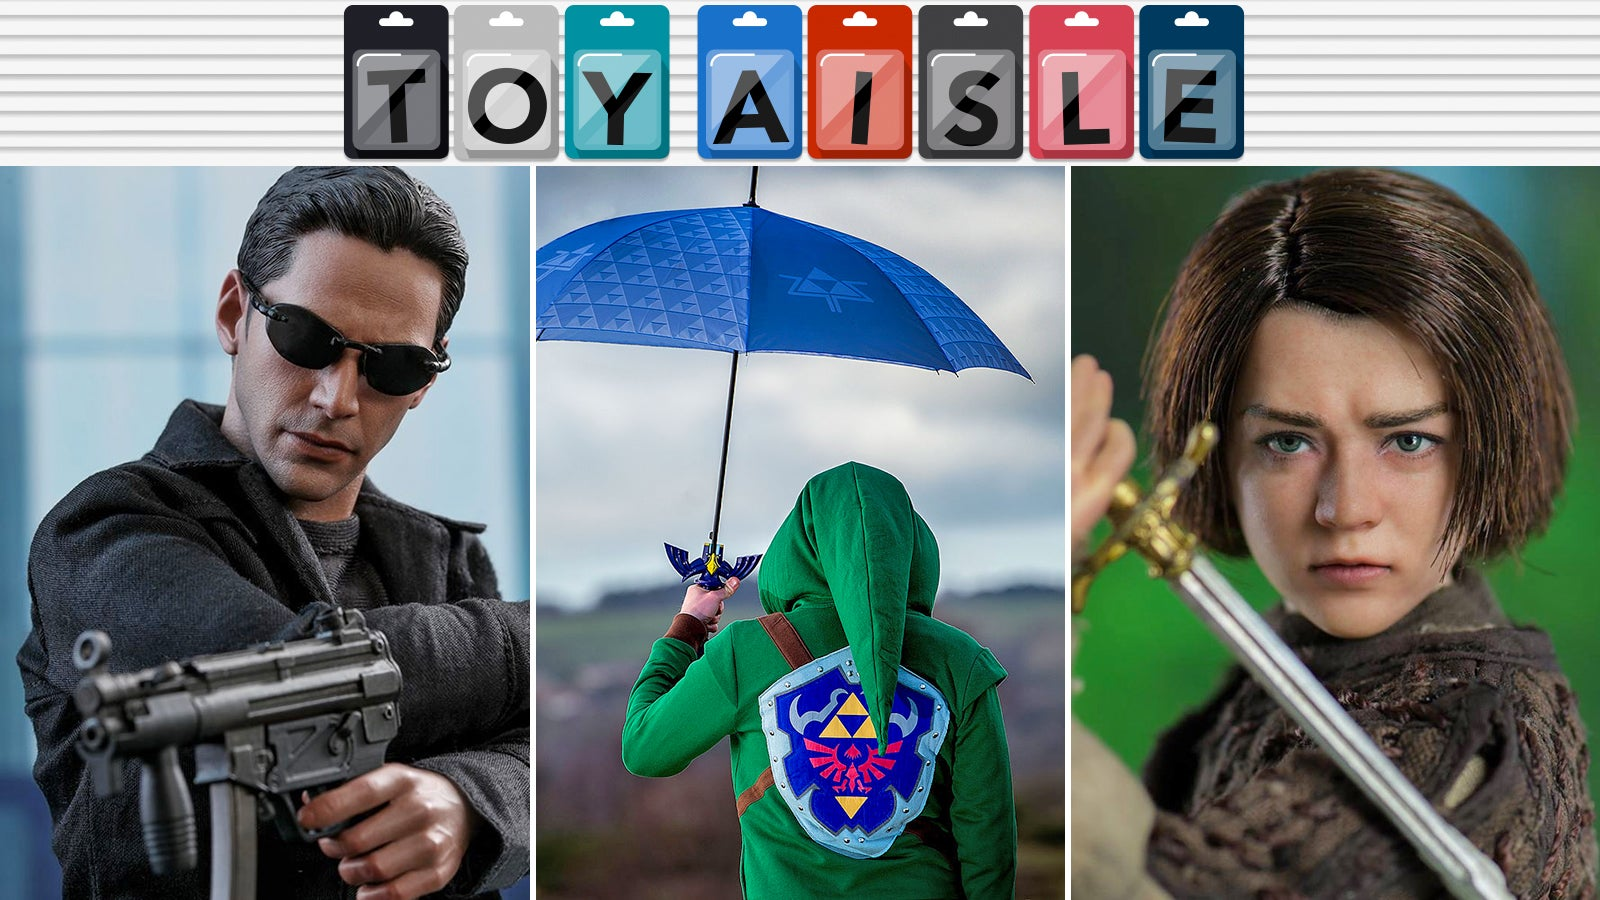 A Master Sword For Battling Rain, The Return Of The One, And More Of Our Favourite Toys Of The Week